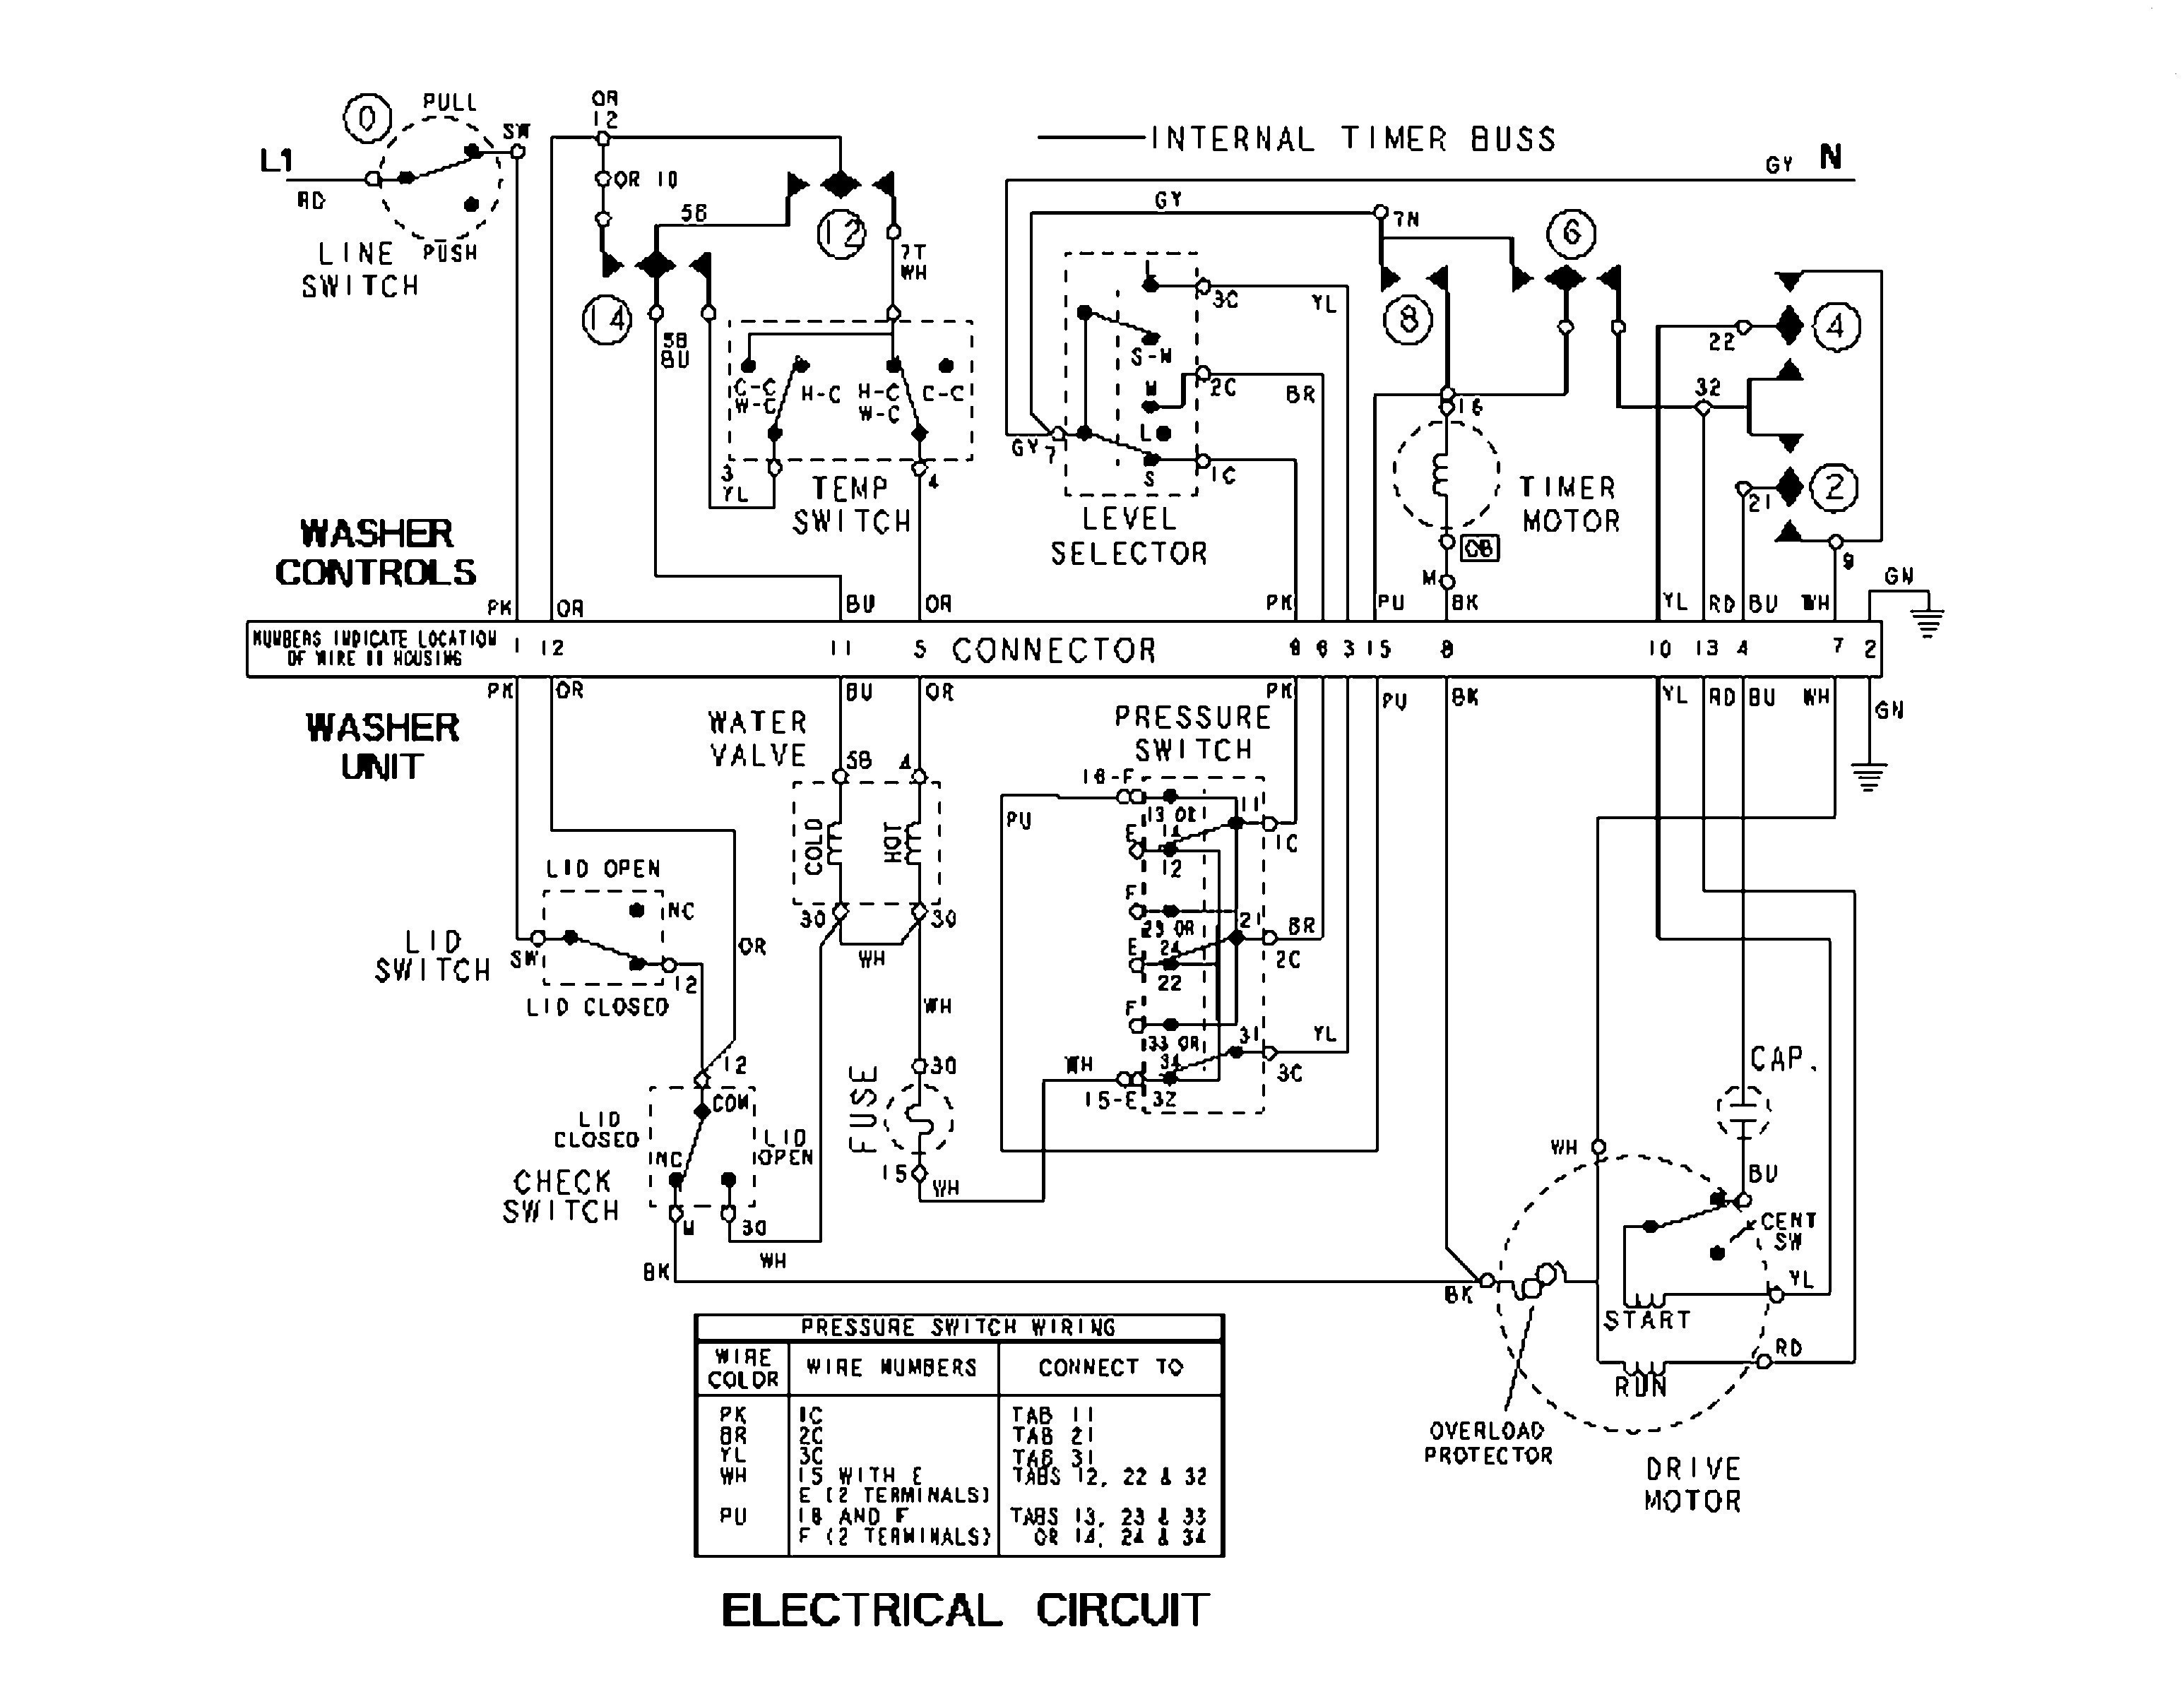 General Electric Motor Wiring Diagram Leeson Single Phase ... on